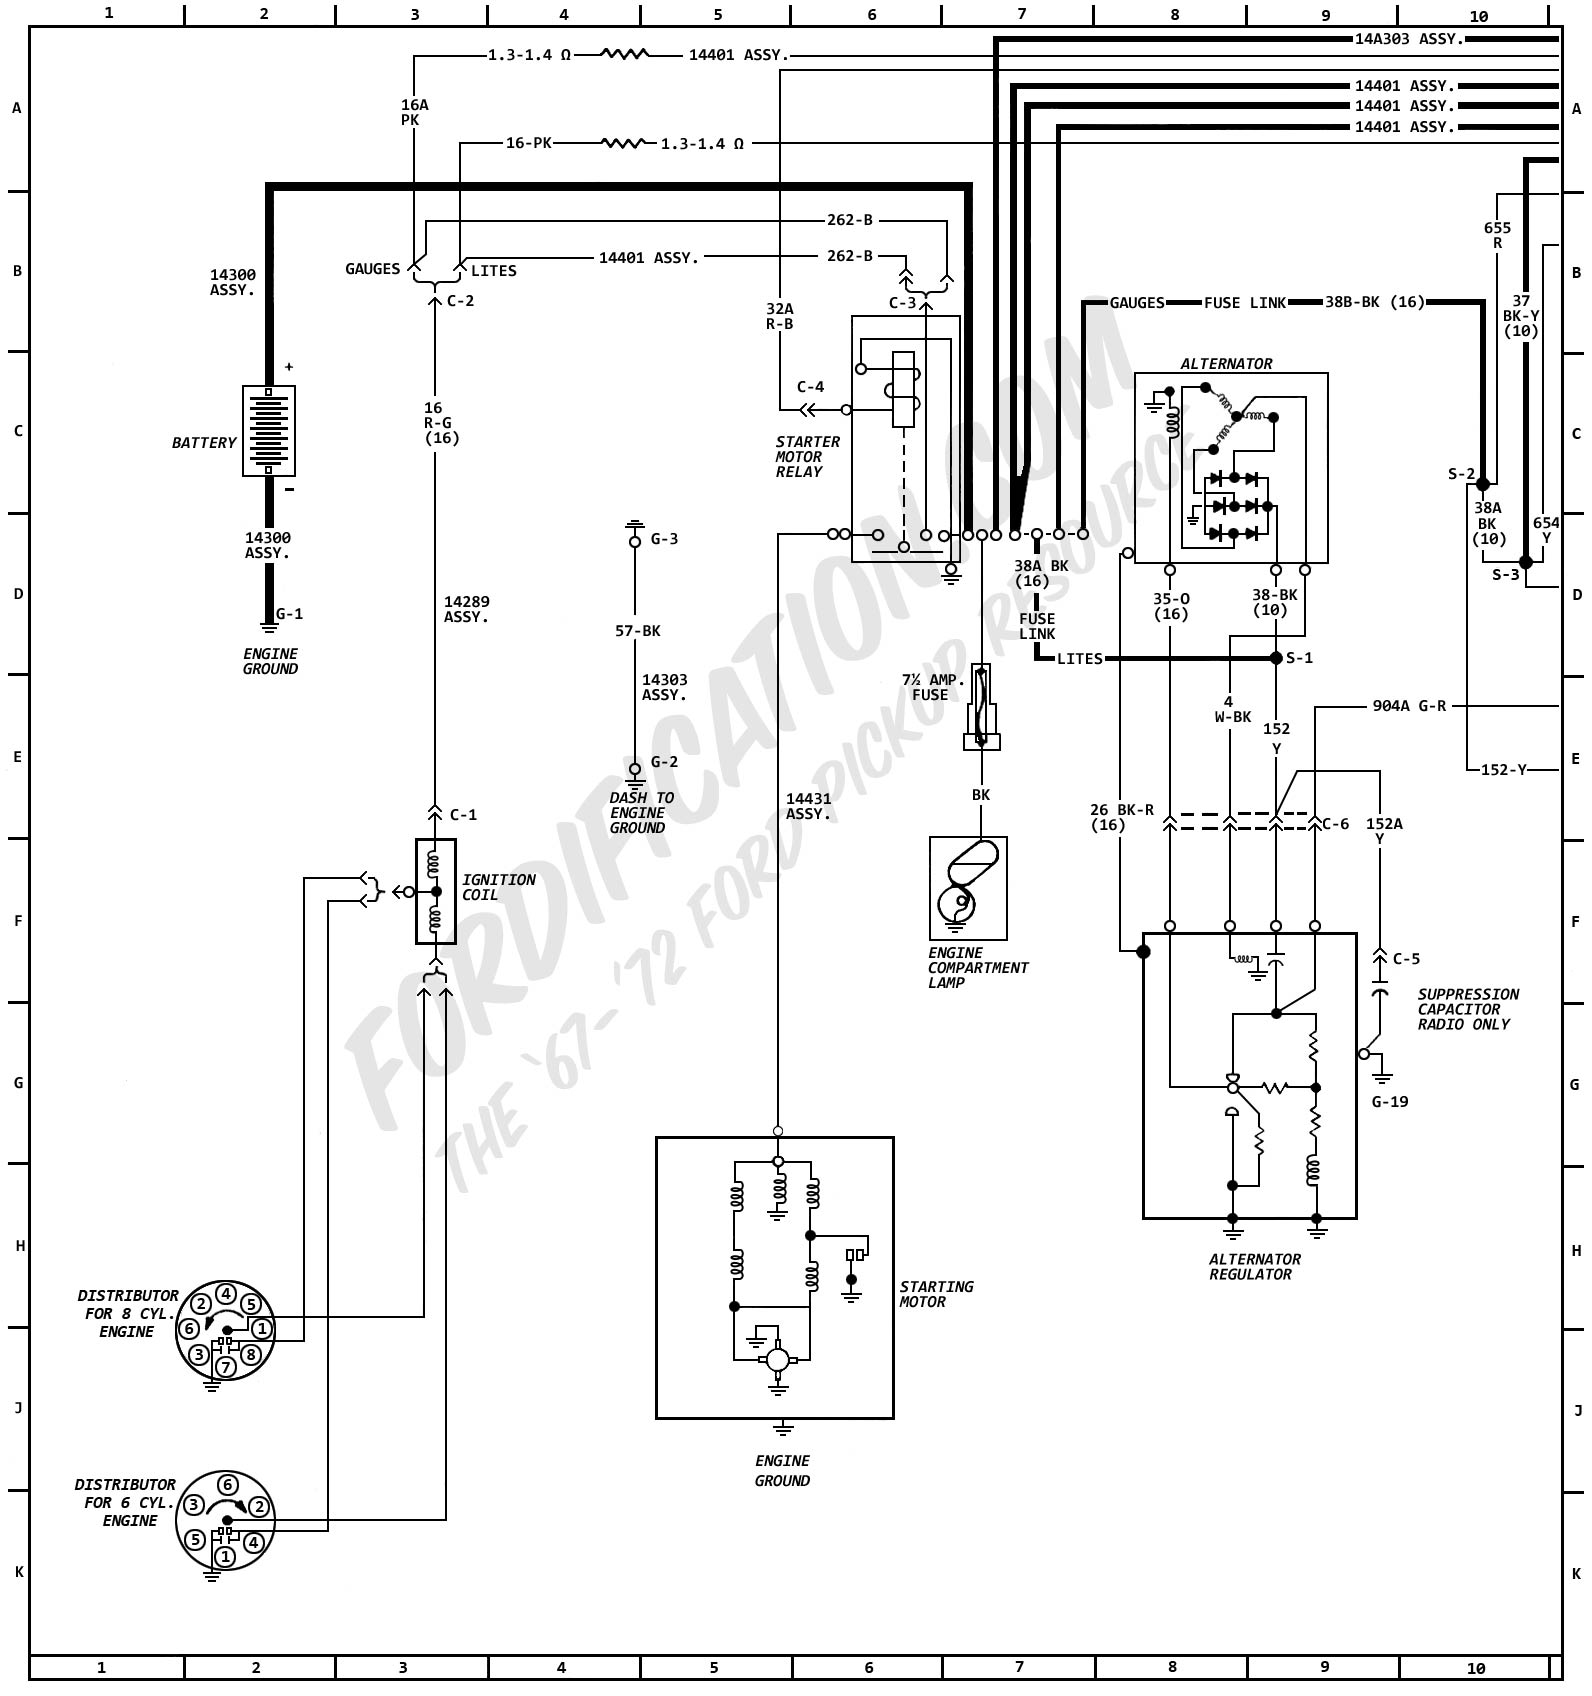 1970 Ford F250 Ignition Wiring Diagram Fuse Box 2011 F350 1972 Truck Diagrams Fordification Com Rh Exterior Light F 250 For 1992